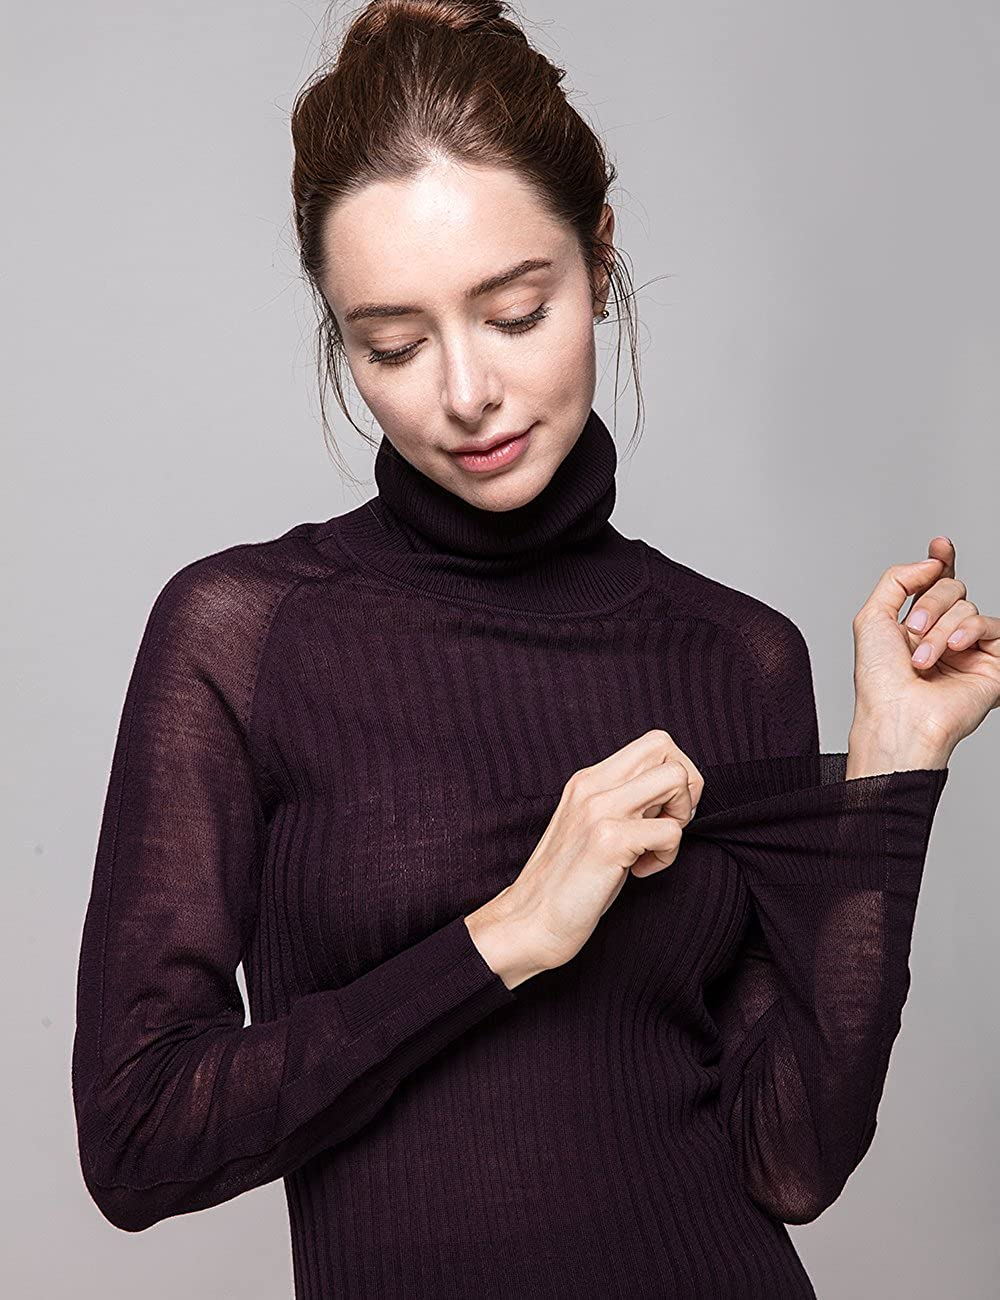 Cas Lady Womens Pure Merino Wool Classic Knit Top Lightweight Turtleneck Sweater Long Sleeve Pullover